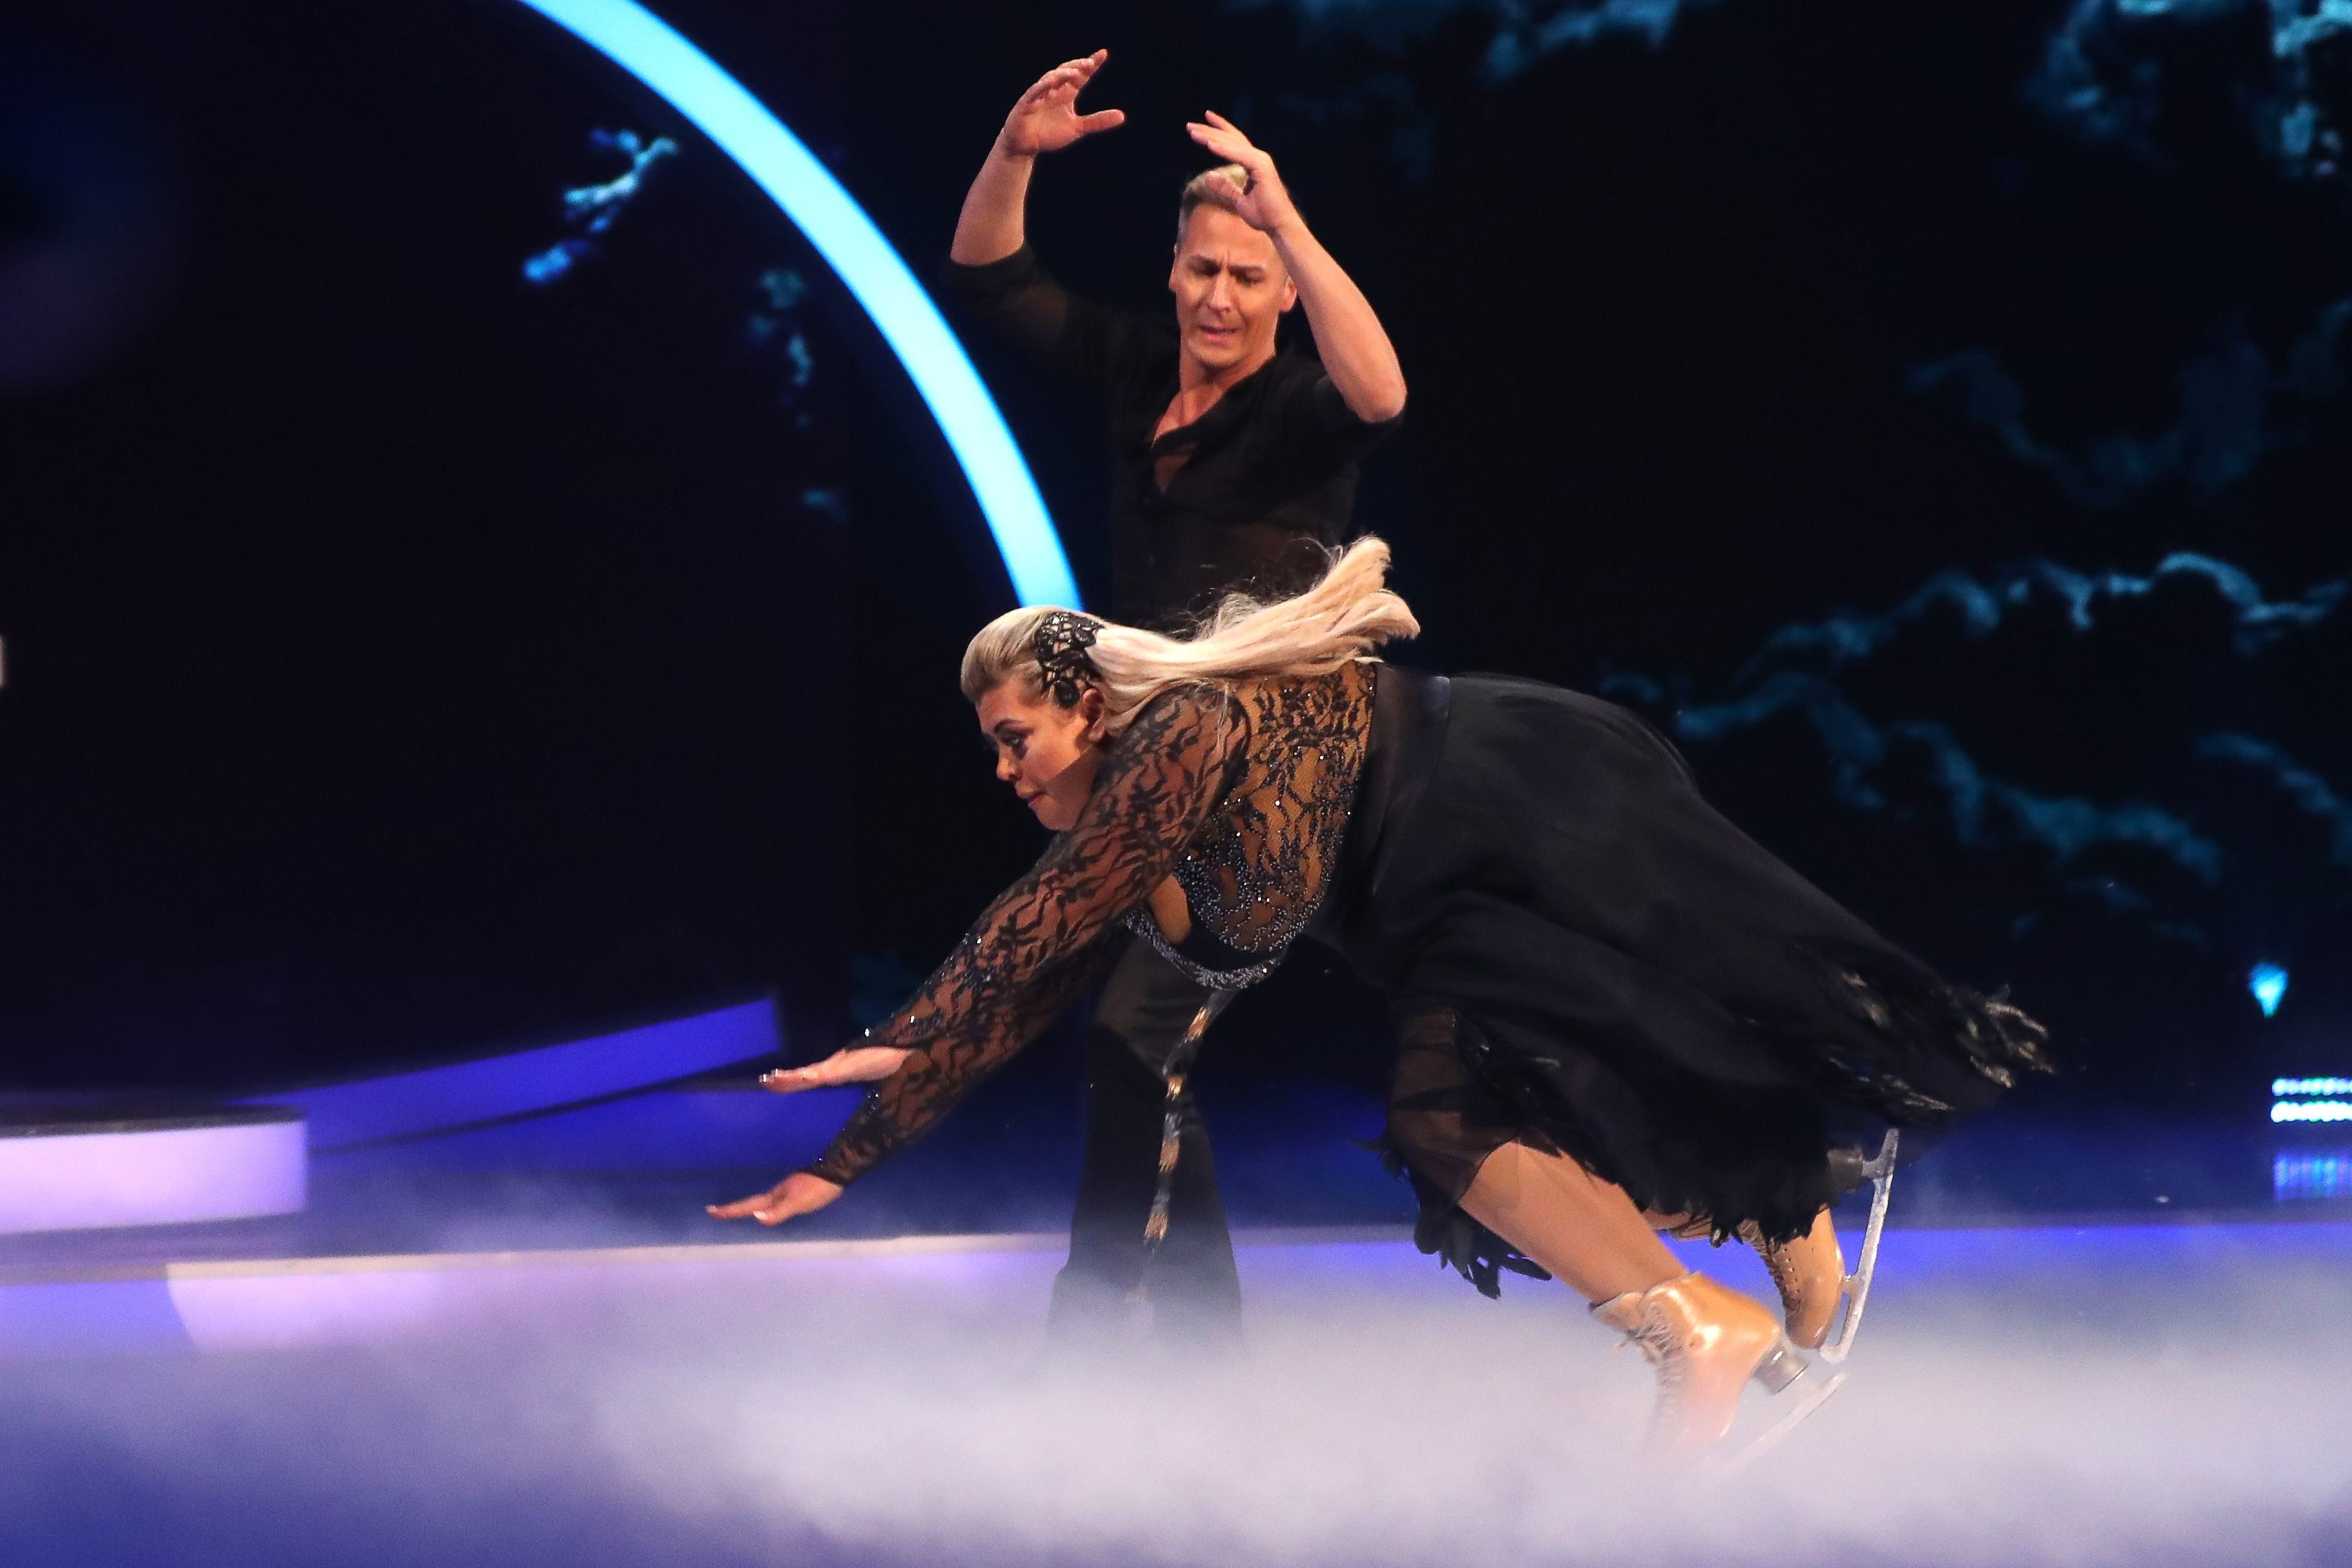 Gemma Collins' 'Dancing On Ice' Fall Is No Excuse For